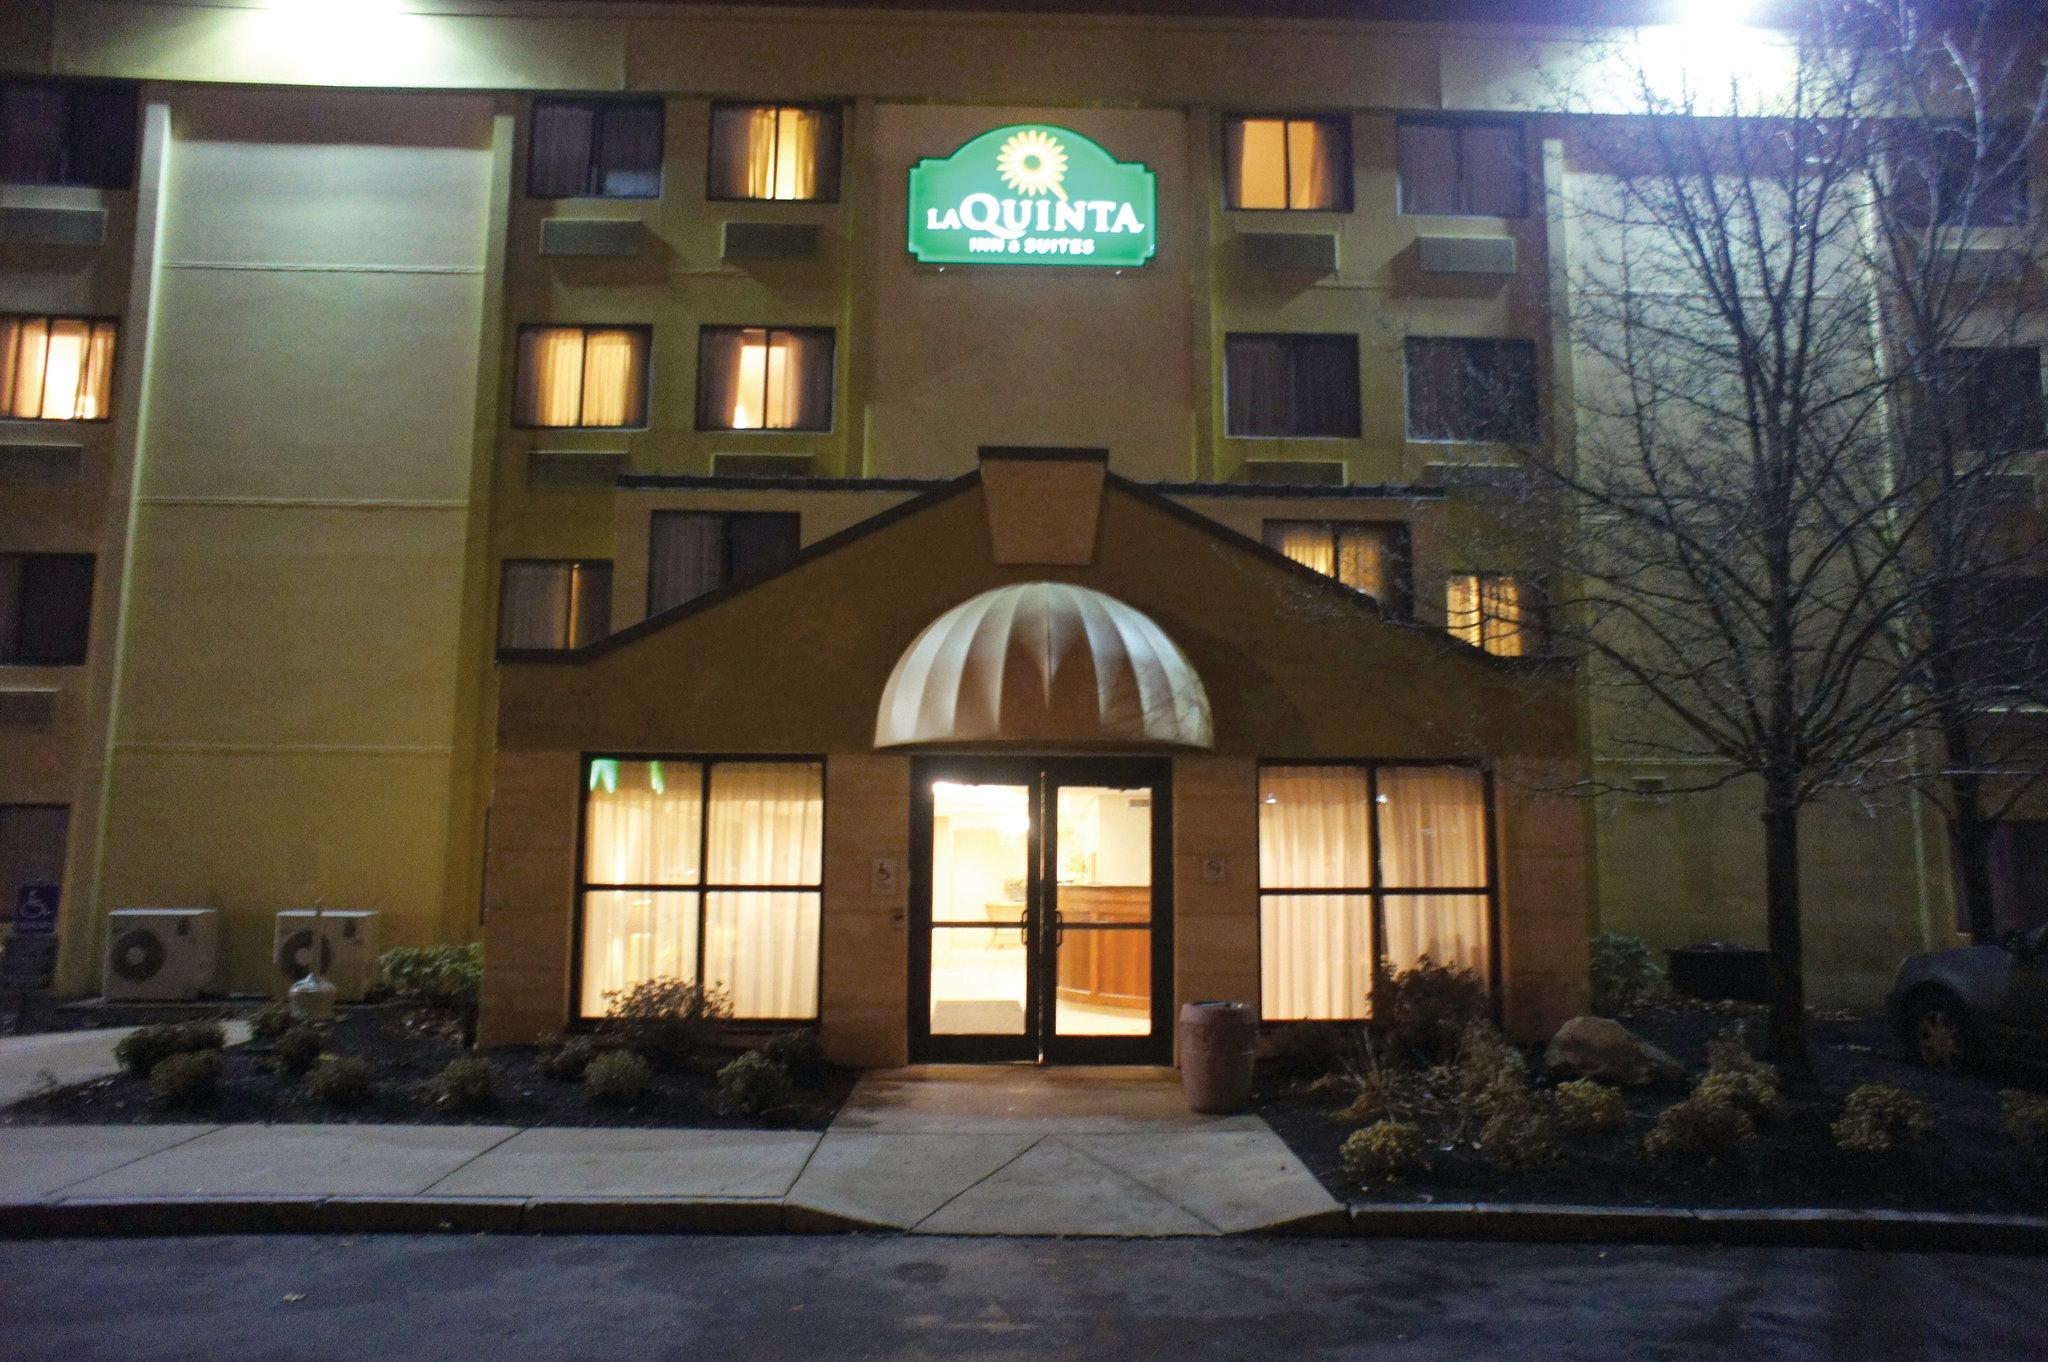 La Quinta Inn & Suites Salem